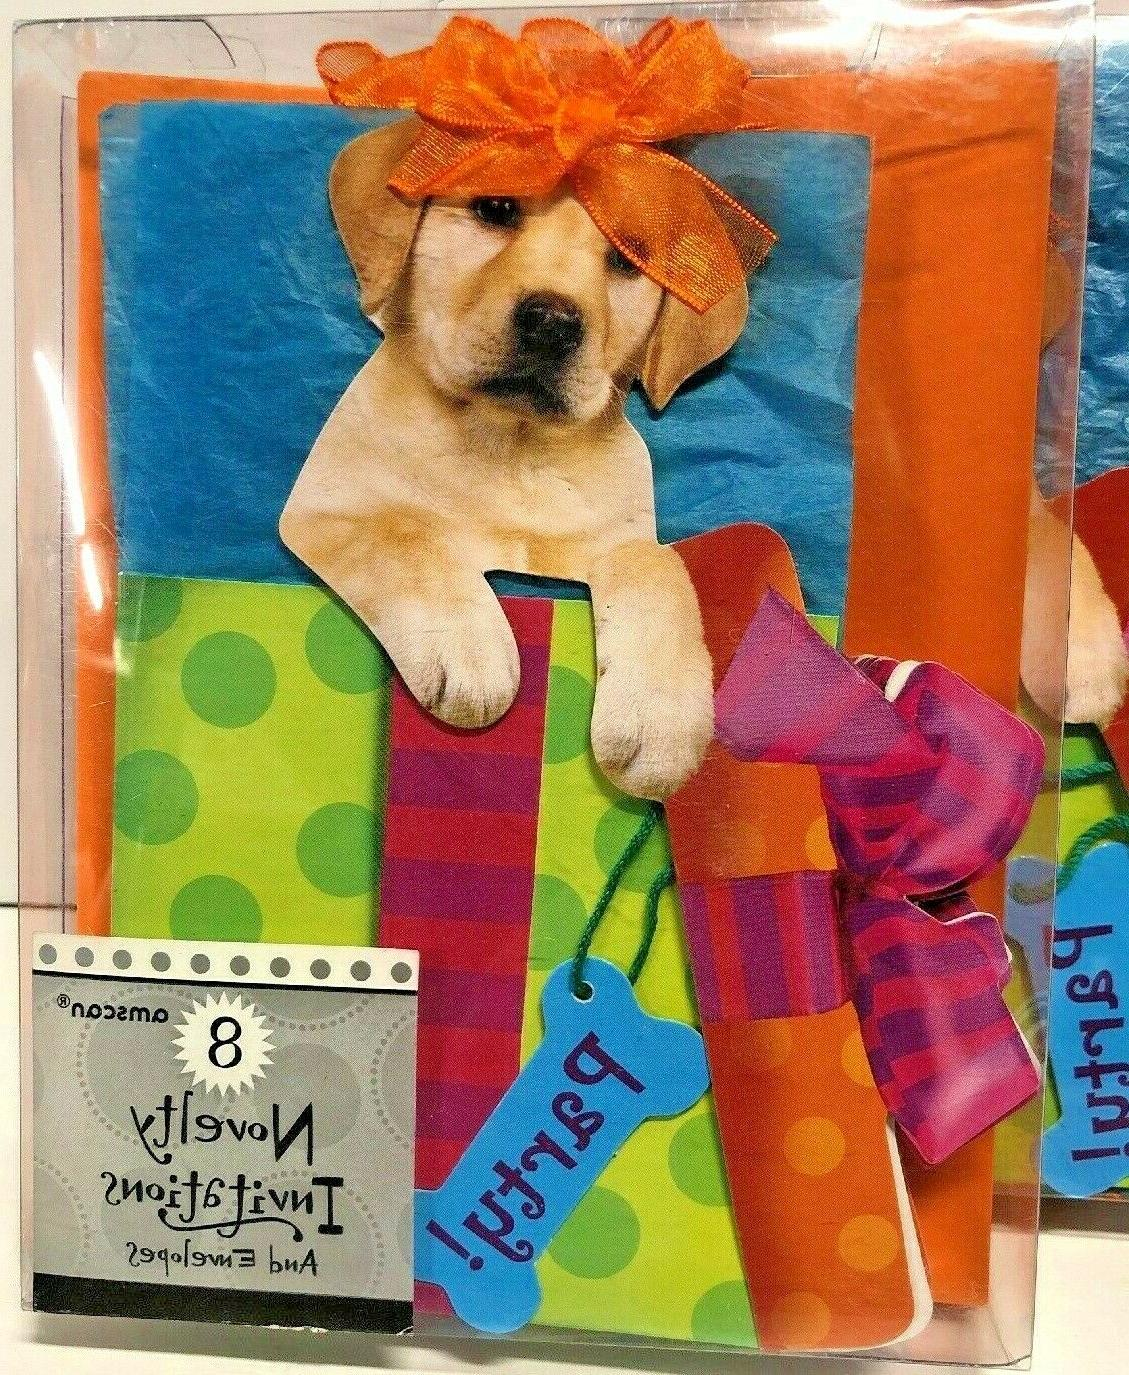 novelty party invitations with cute dog design